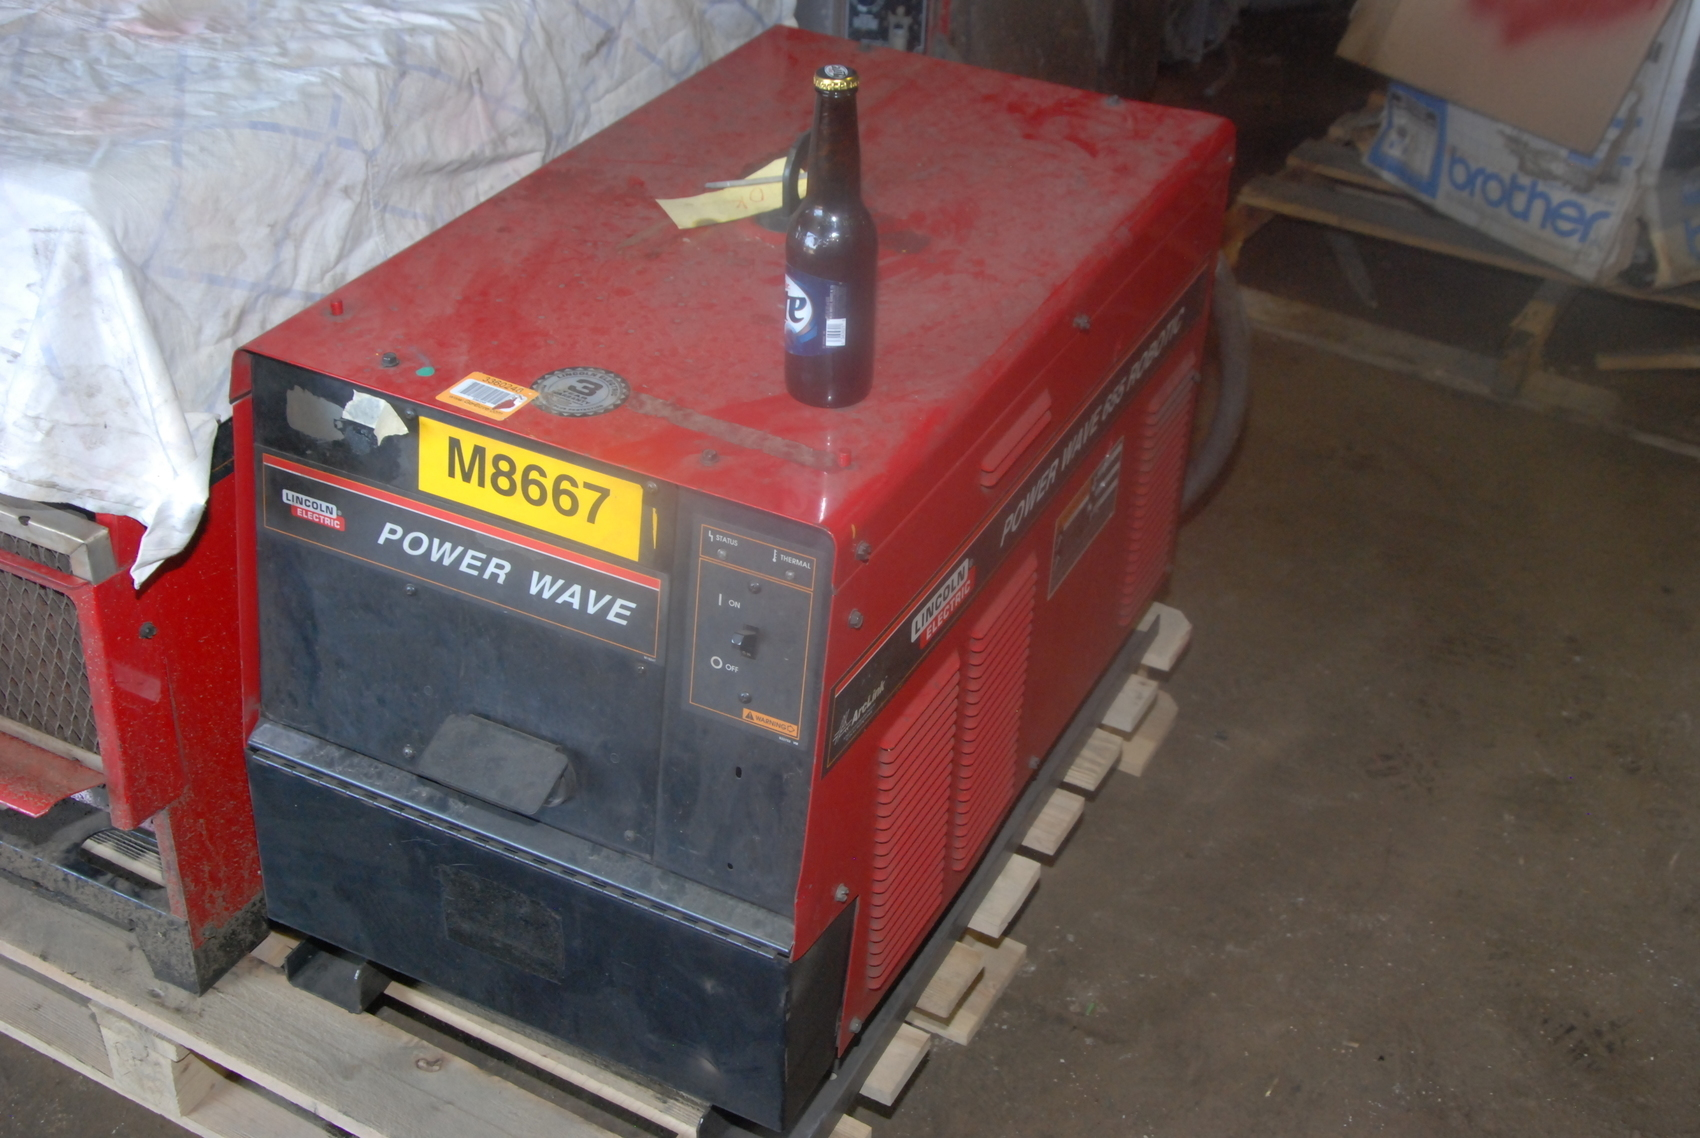 Lincoln electric Power Wave 655 welder